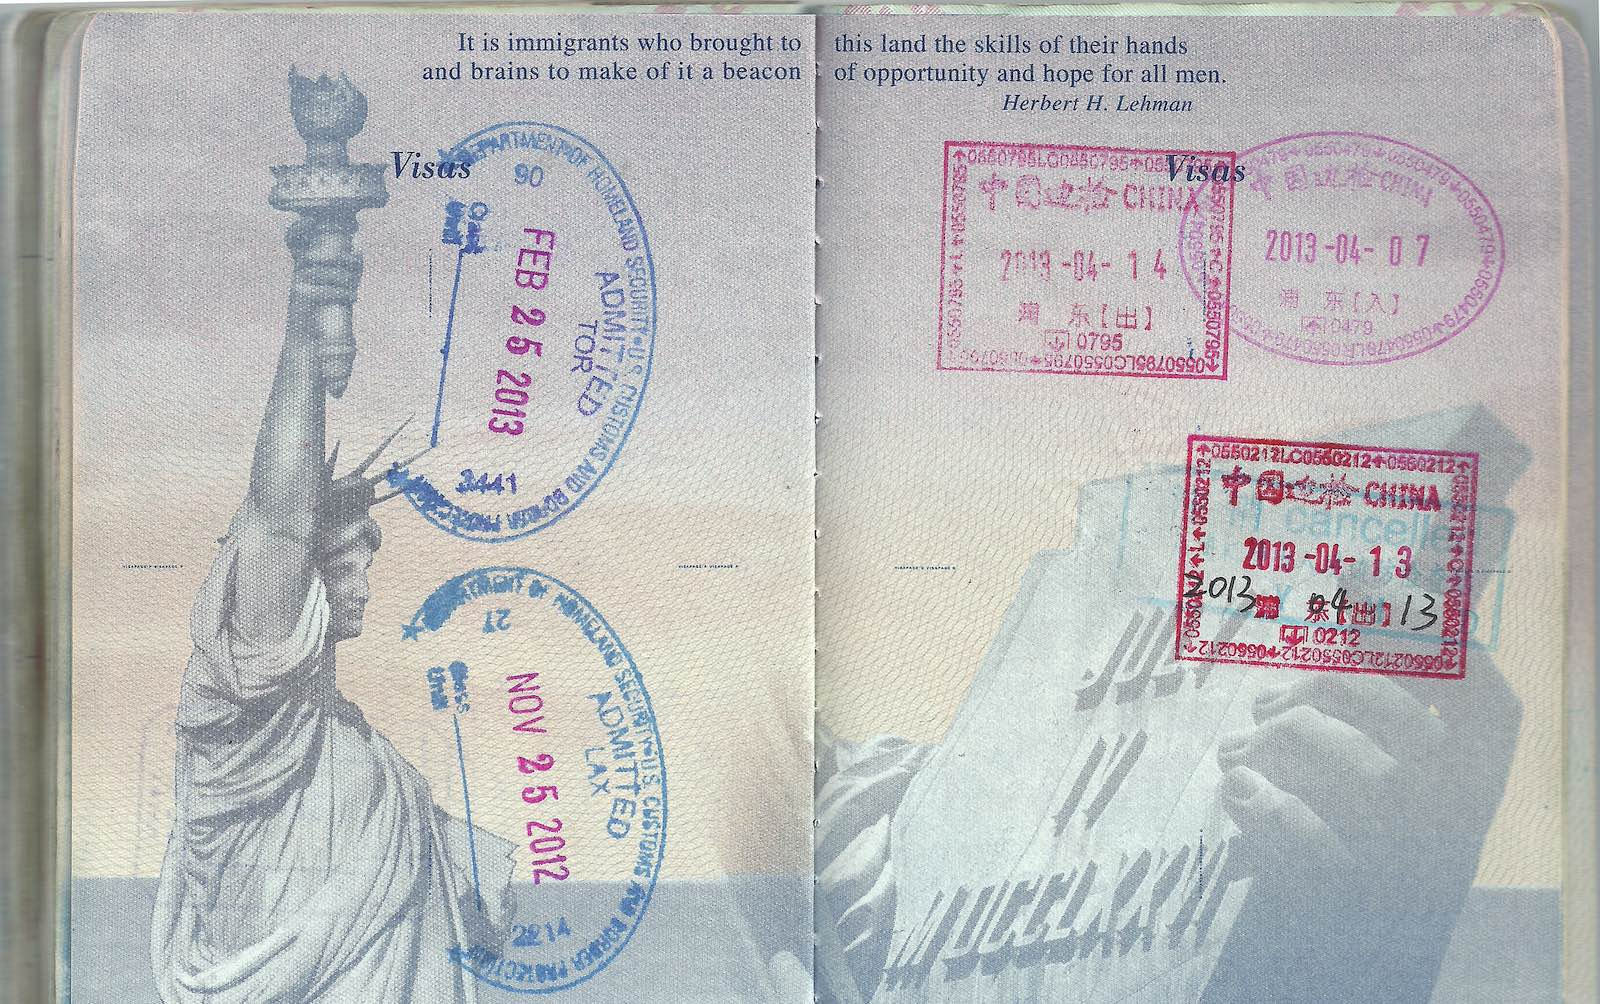 Of course, holders of one of these passports don't need worry about a US visa (Photo: dcgreer/Flickr)